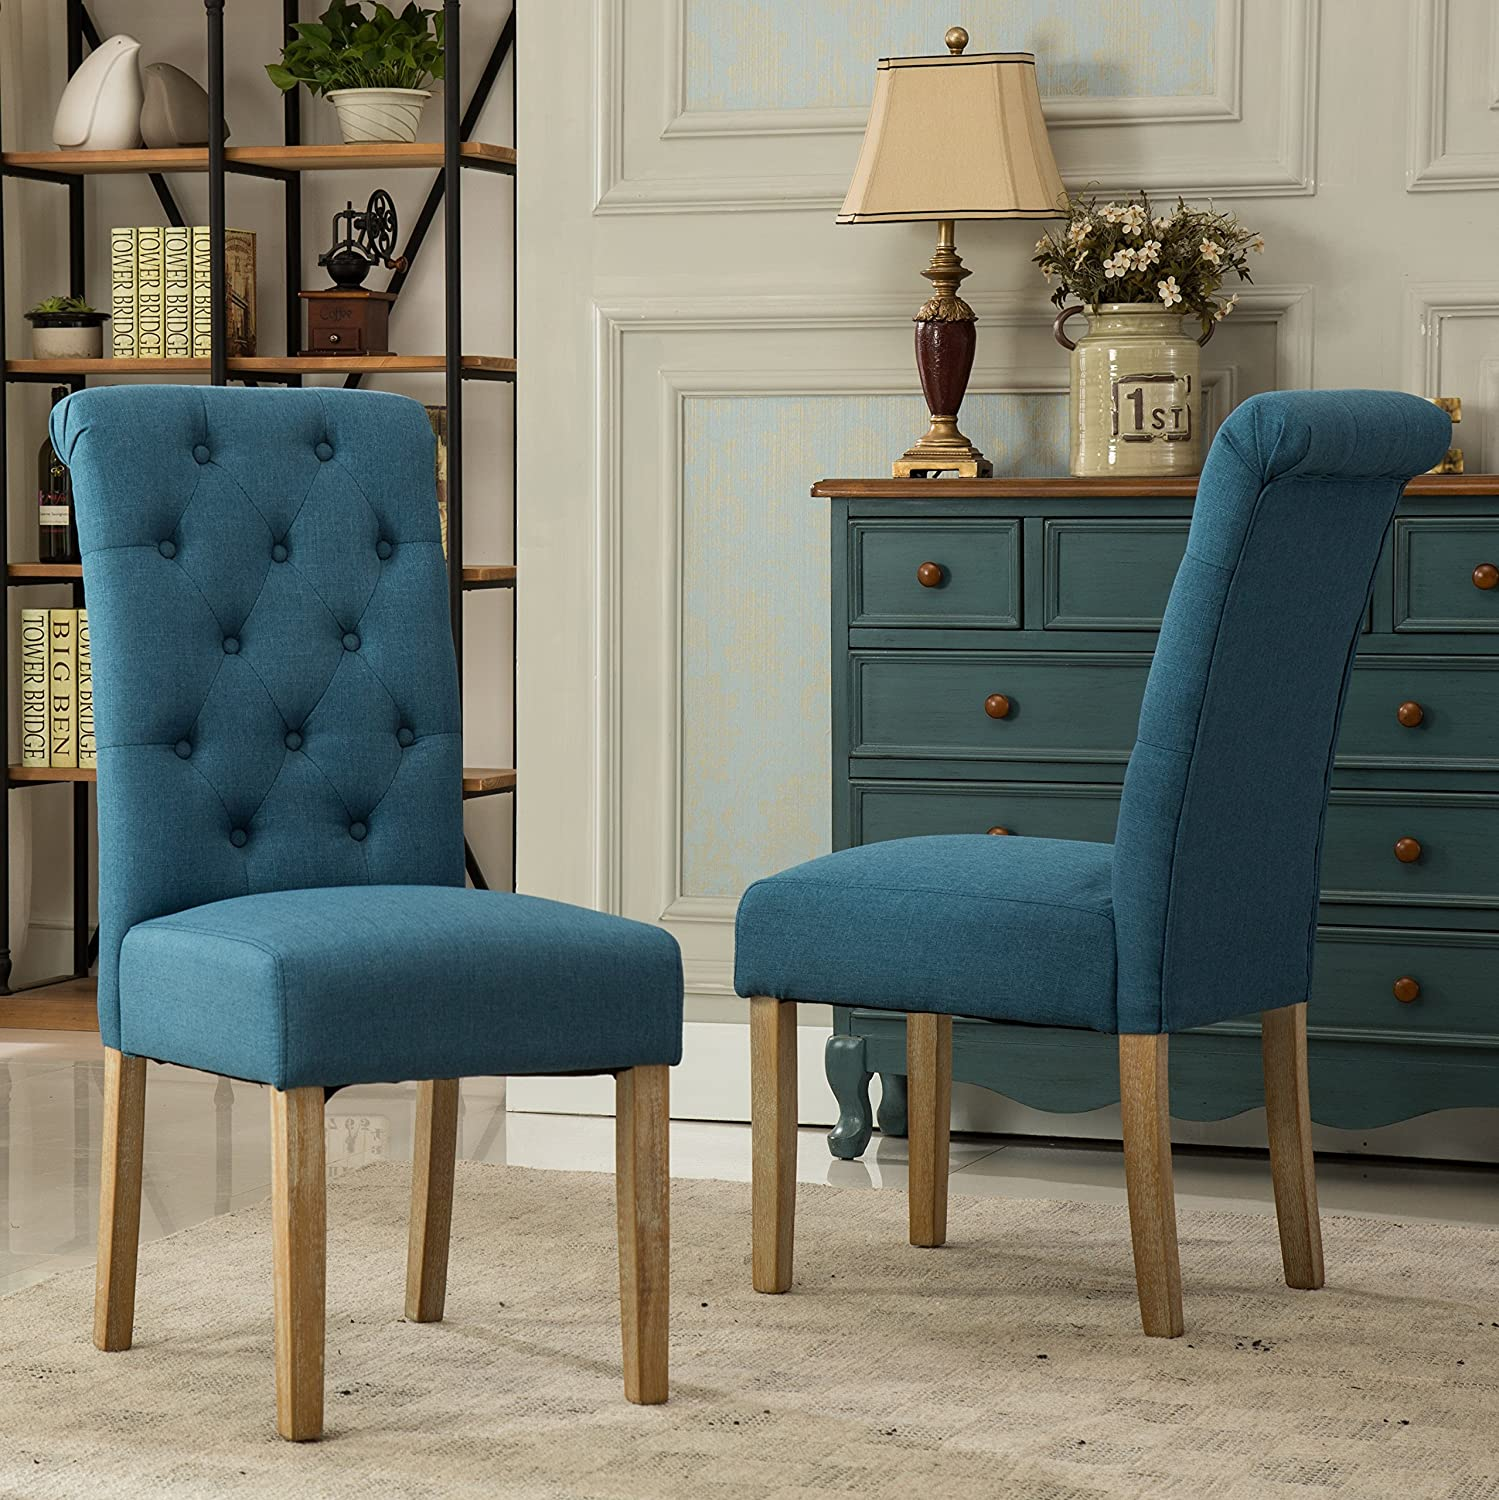 Amazon.com   Roundhill Furniture Habit Solid Wood Tufted Parsons Dining  Chair (Set Of 2), Blue   Chairs